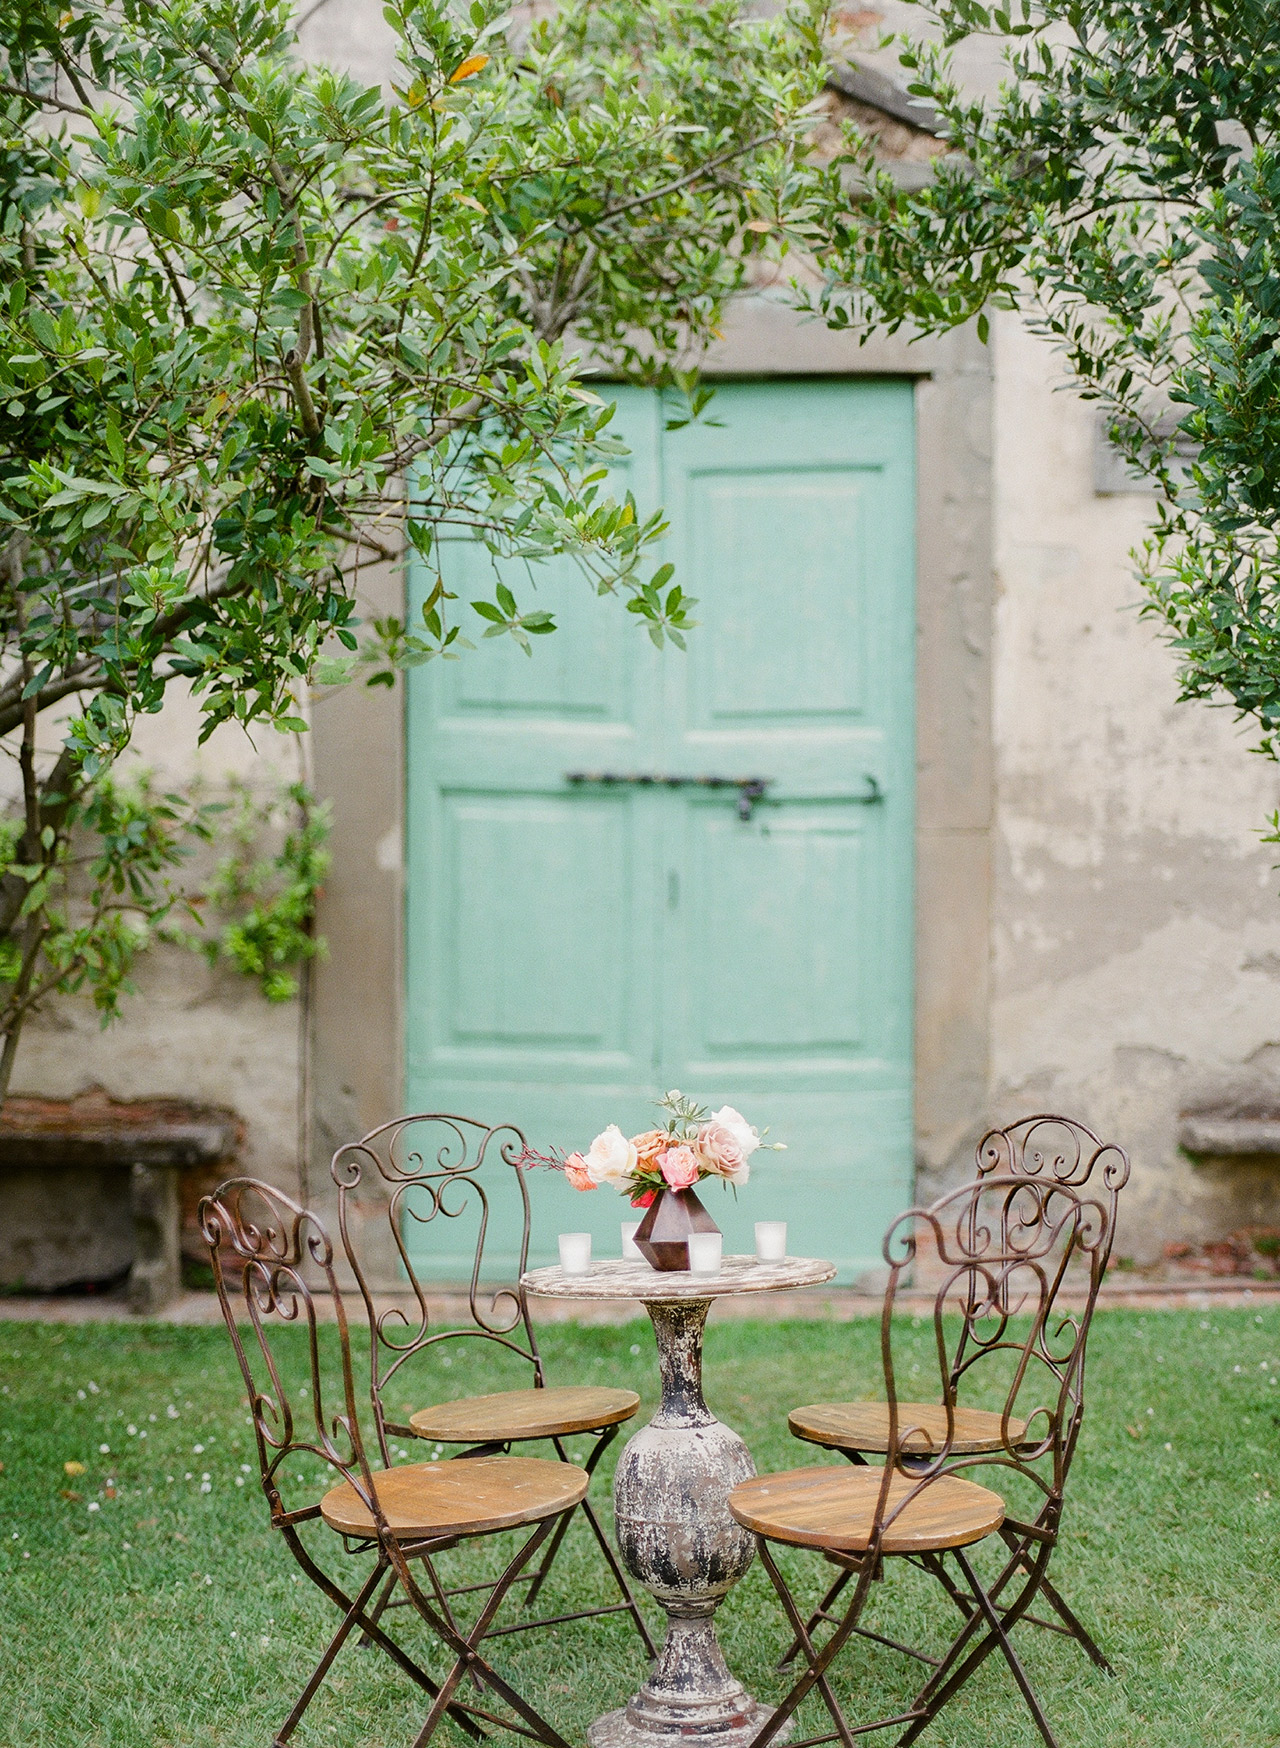 small chick tables iron chairs outdoors